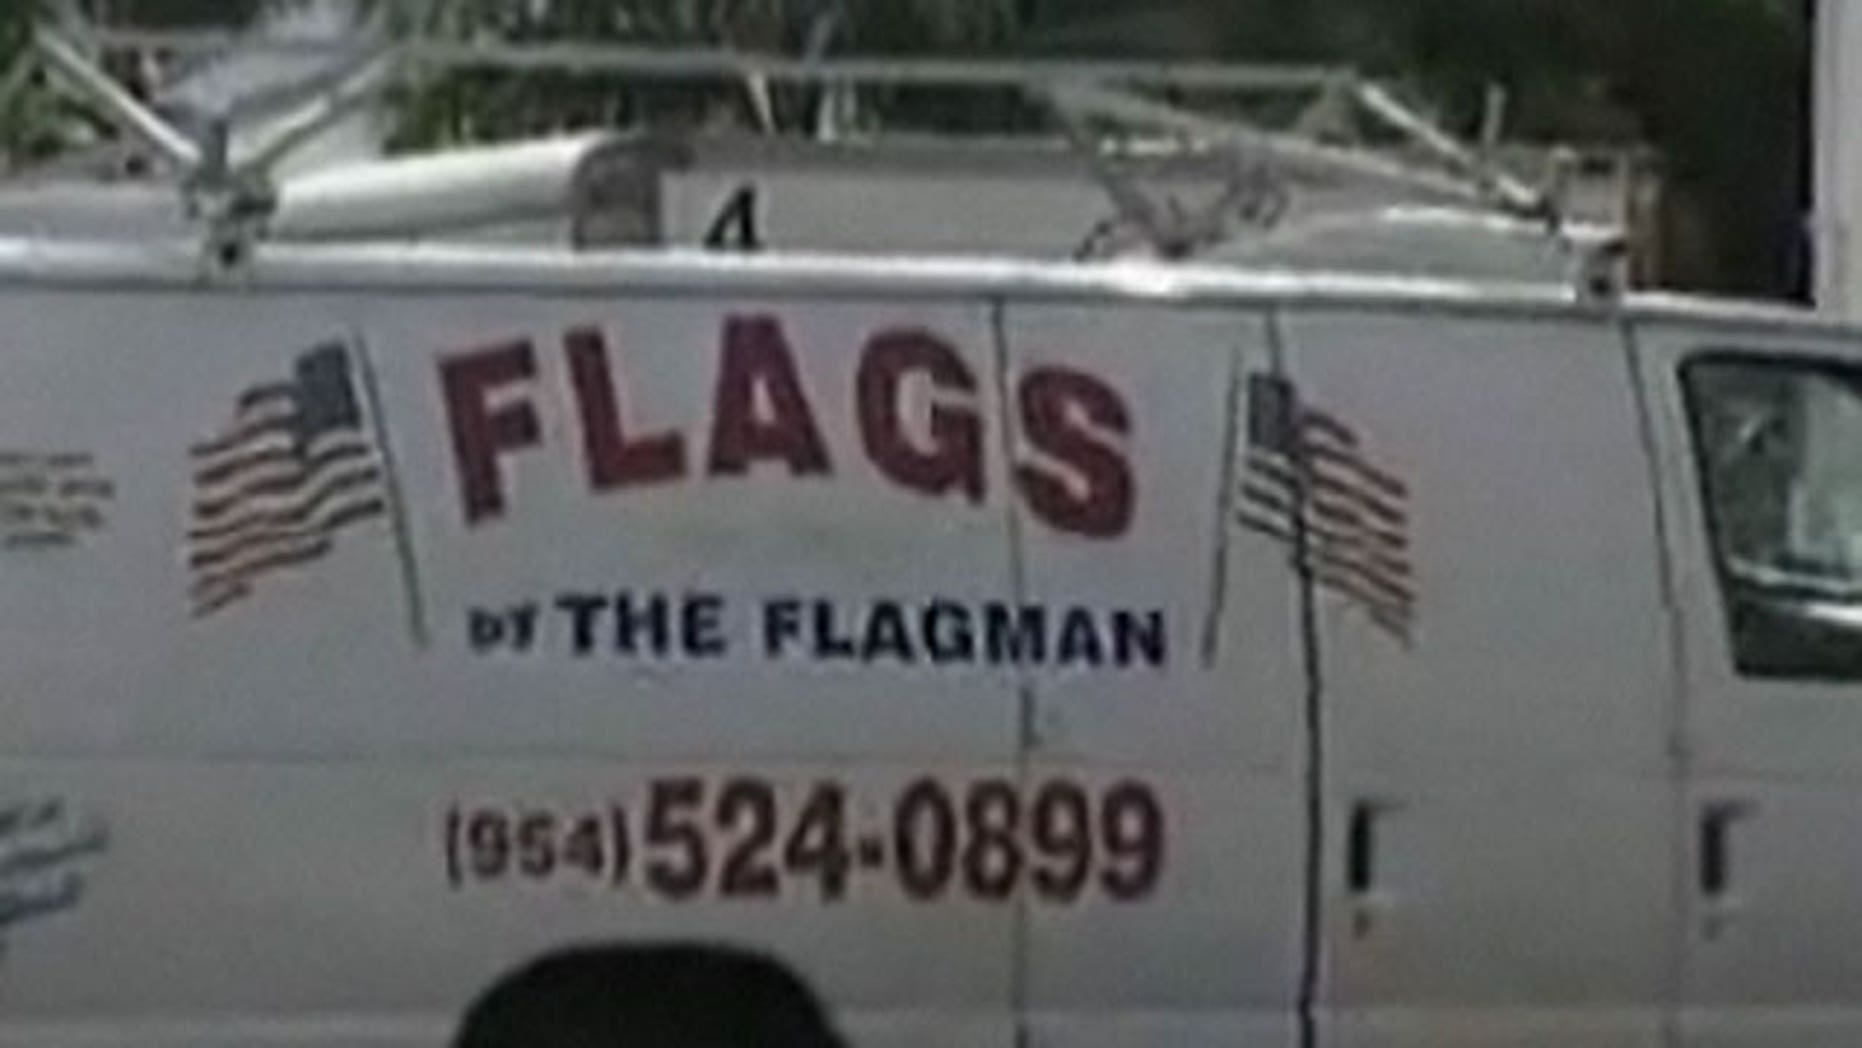 """Andrew Chiotis, also known as """"The Flagman,"""" owns the van. He makes a living selling American flags."""